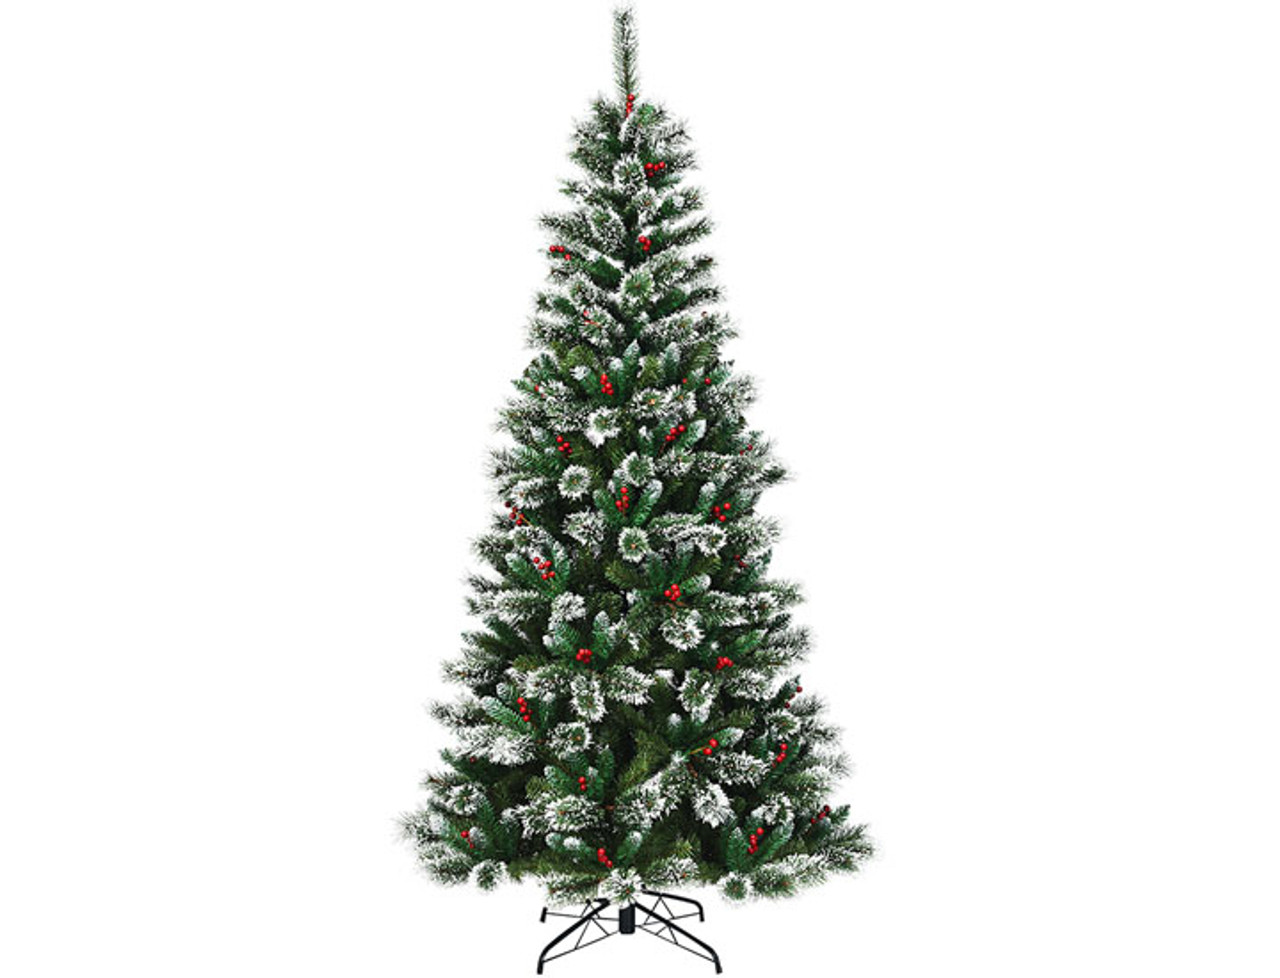 5- to 8-Foot Snow Flocked Artificial Christmas Tree with Red Berries! .99 (REG 9.99) + Free Shipping at Until Gone!